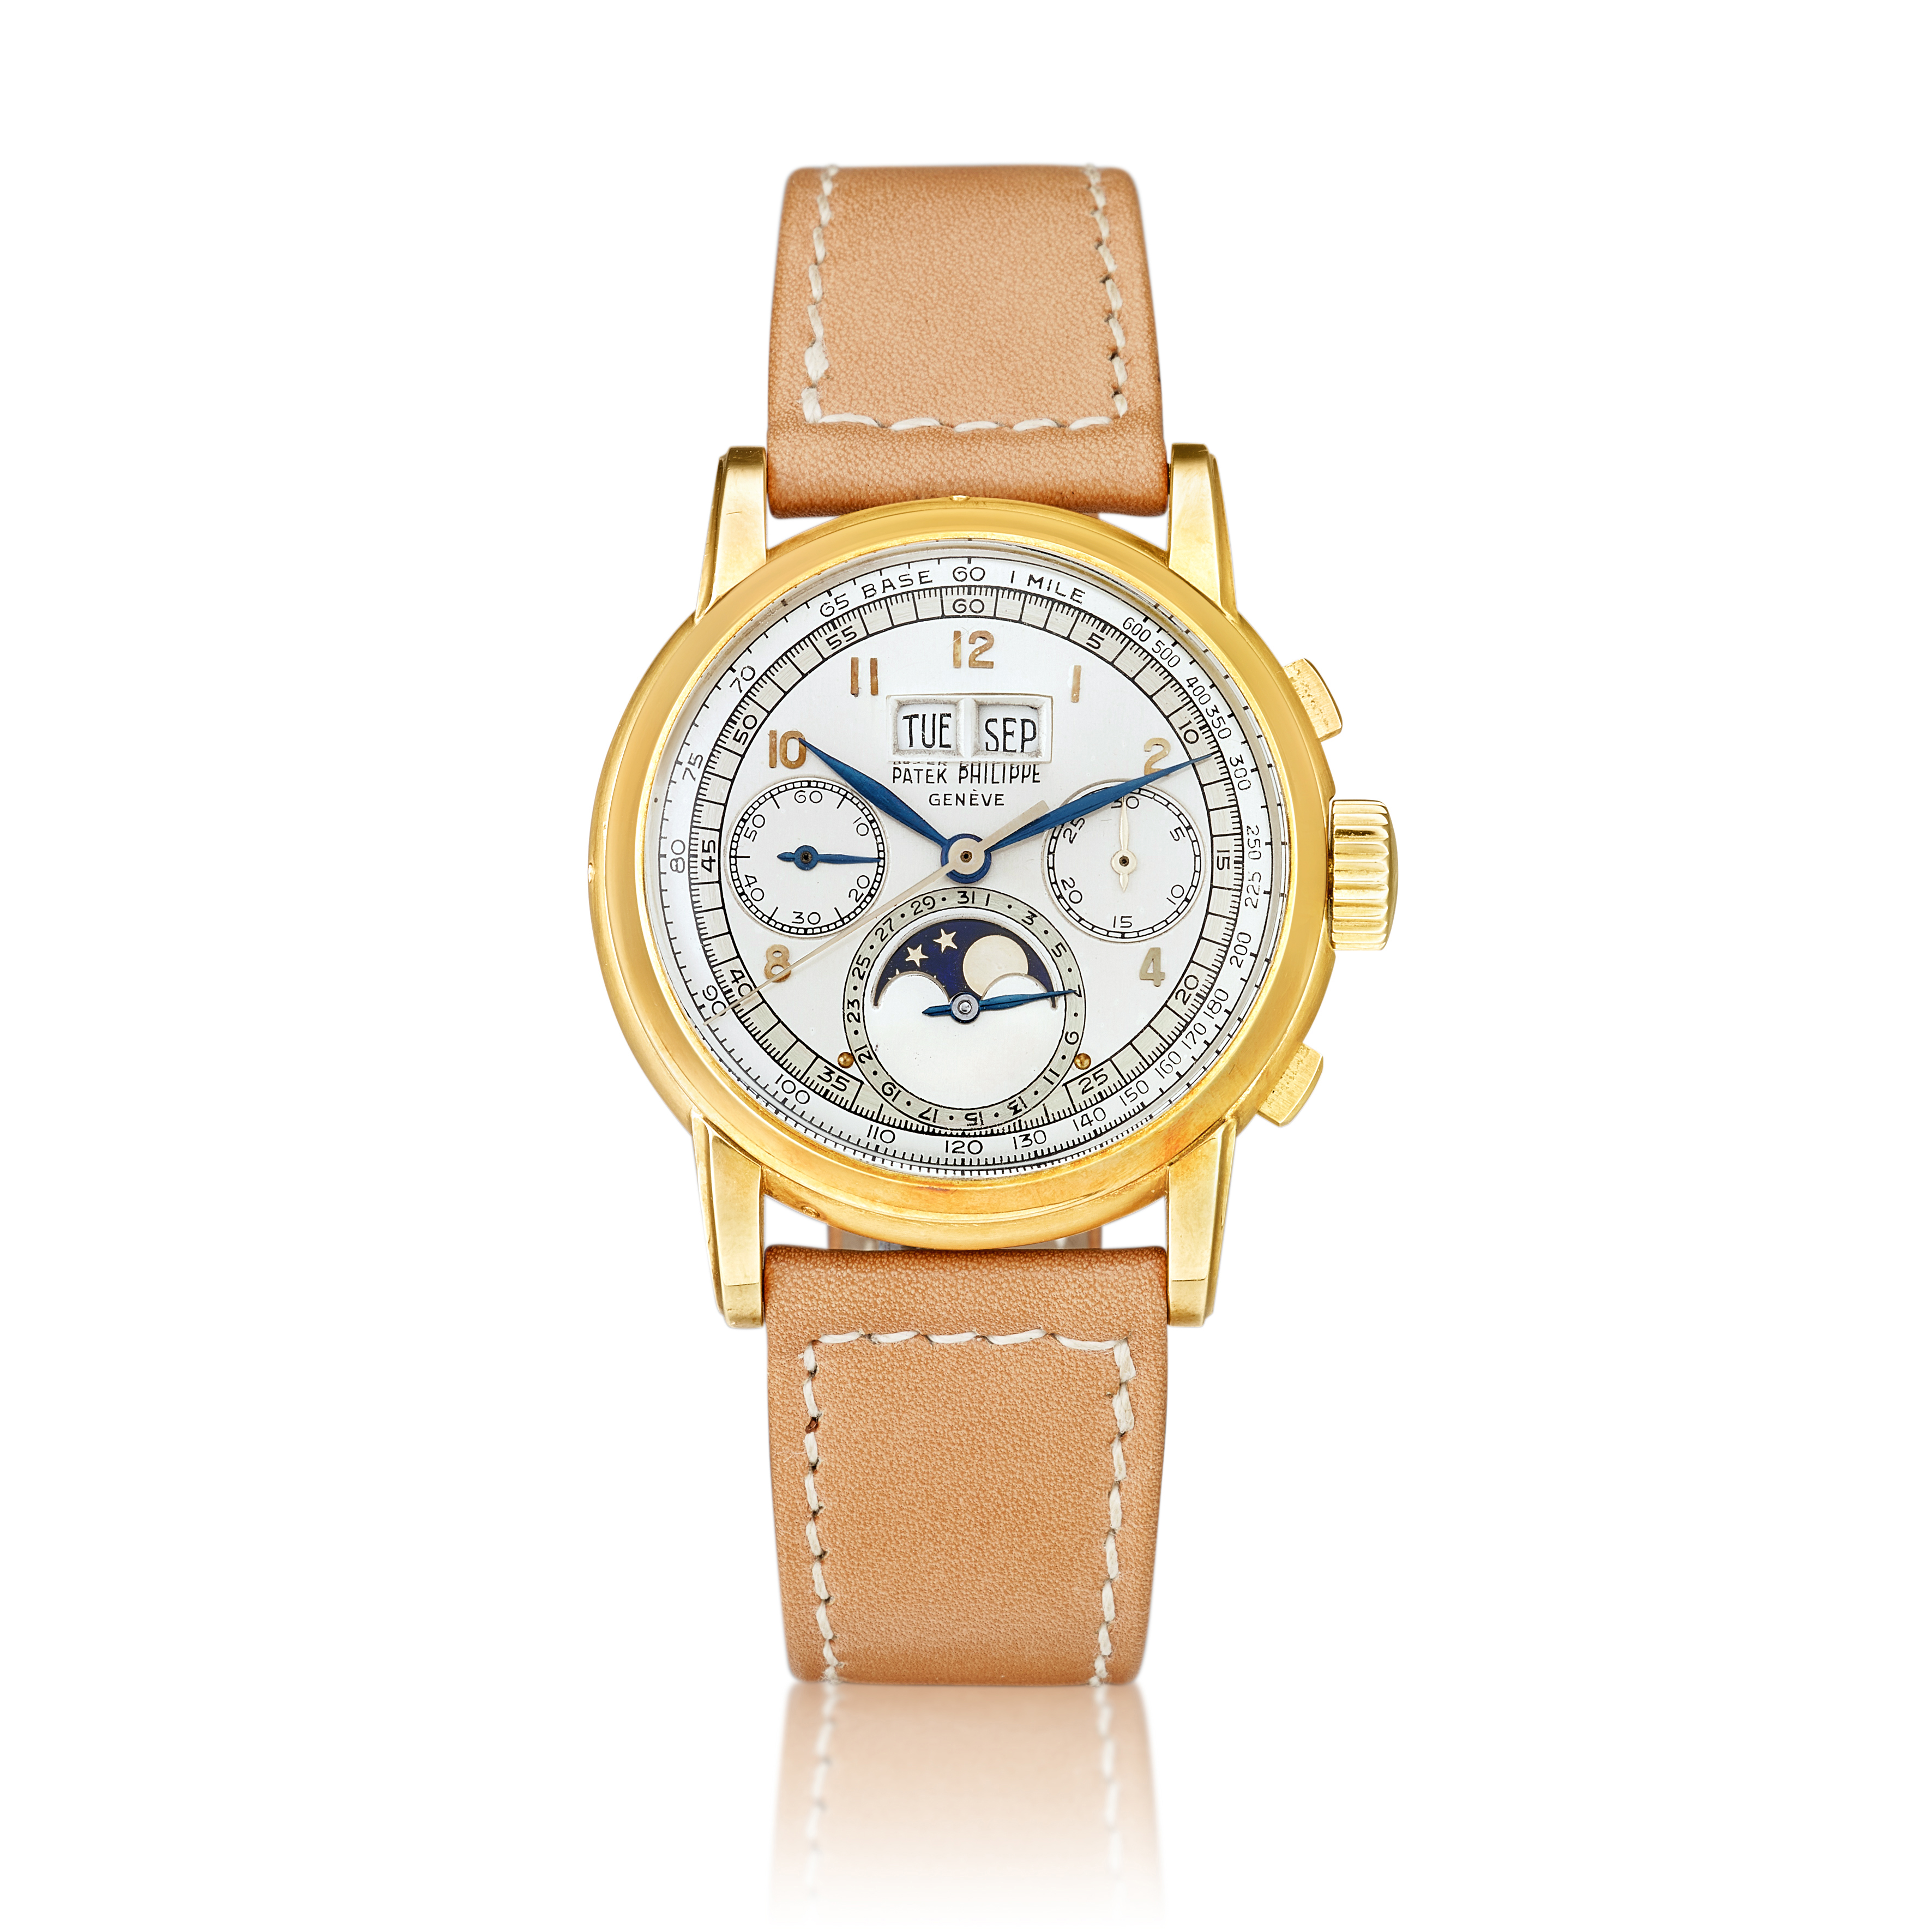 """View full screen - View 1 of Lot 2262. Reference 2499 """"First series"""" A yellow gold perpetual calendar chronograph wristwatch with moon phases and Wenger case, Made in 1953   百達翡麗   型號2499 """"First series""""   黃金萬年曆計時腕錶 ,備月相顯示及 Wenger 錶殼,1953年製."""